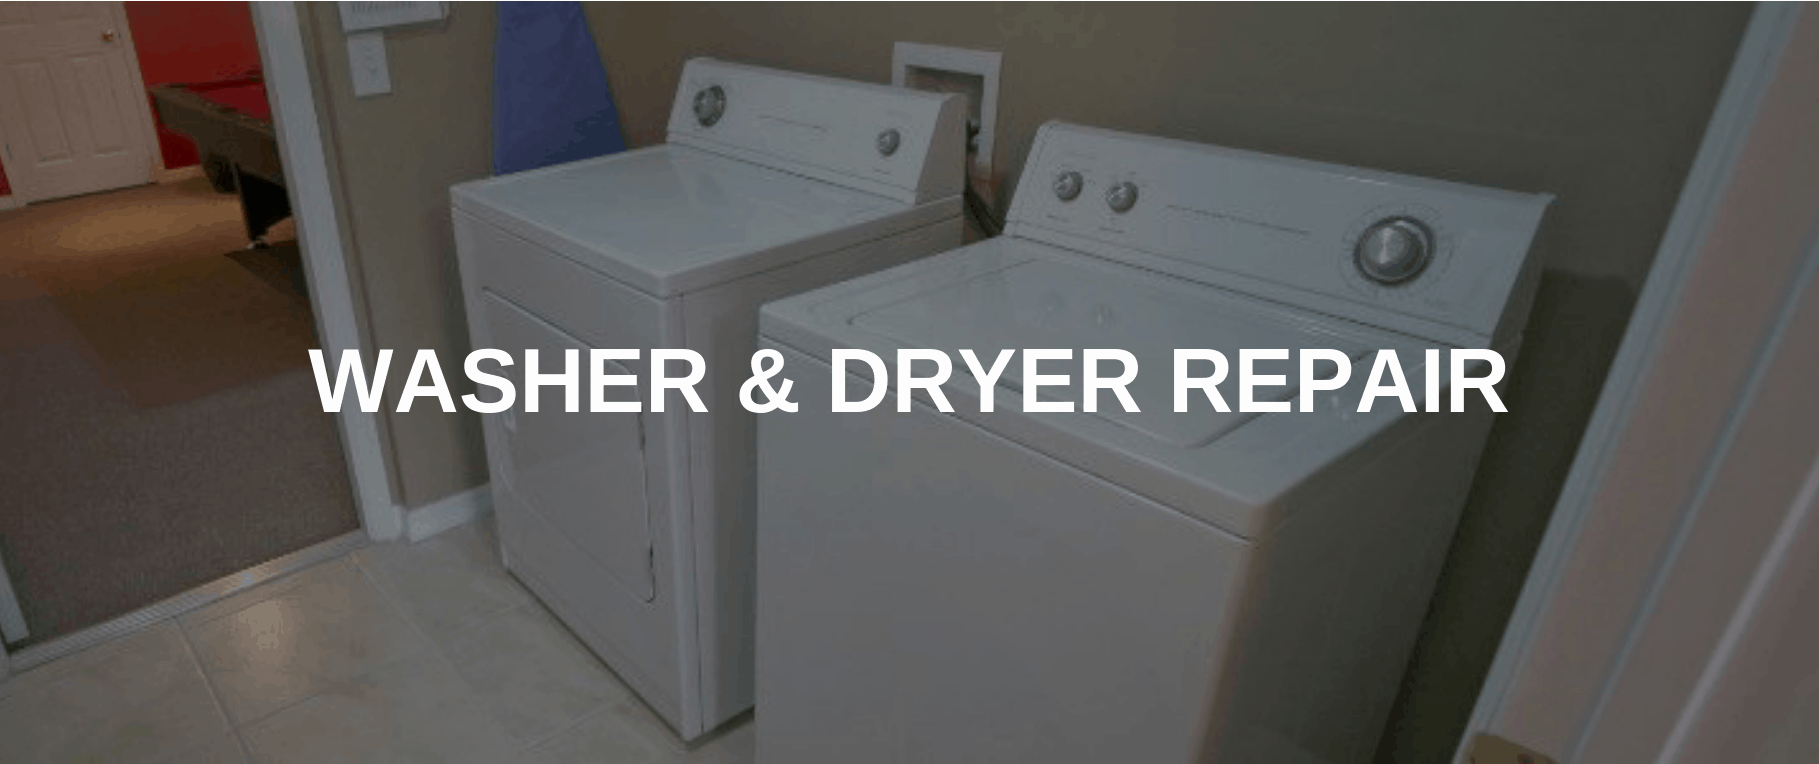 washing machine repair chino hills